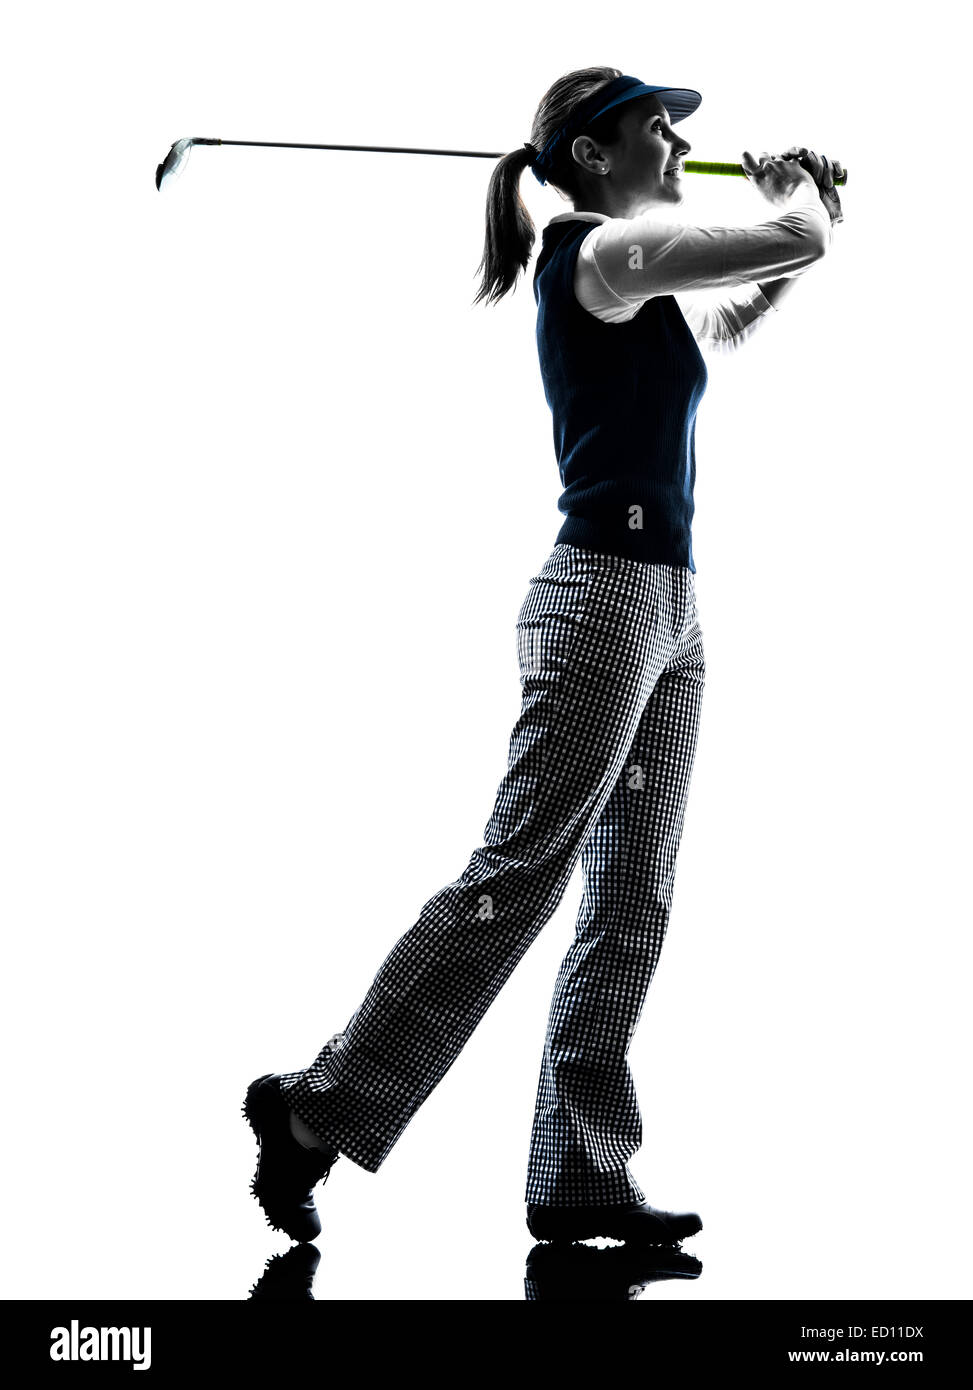 Woman Golfer Golfing Silhouette In White Background Stock Photo